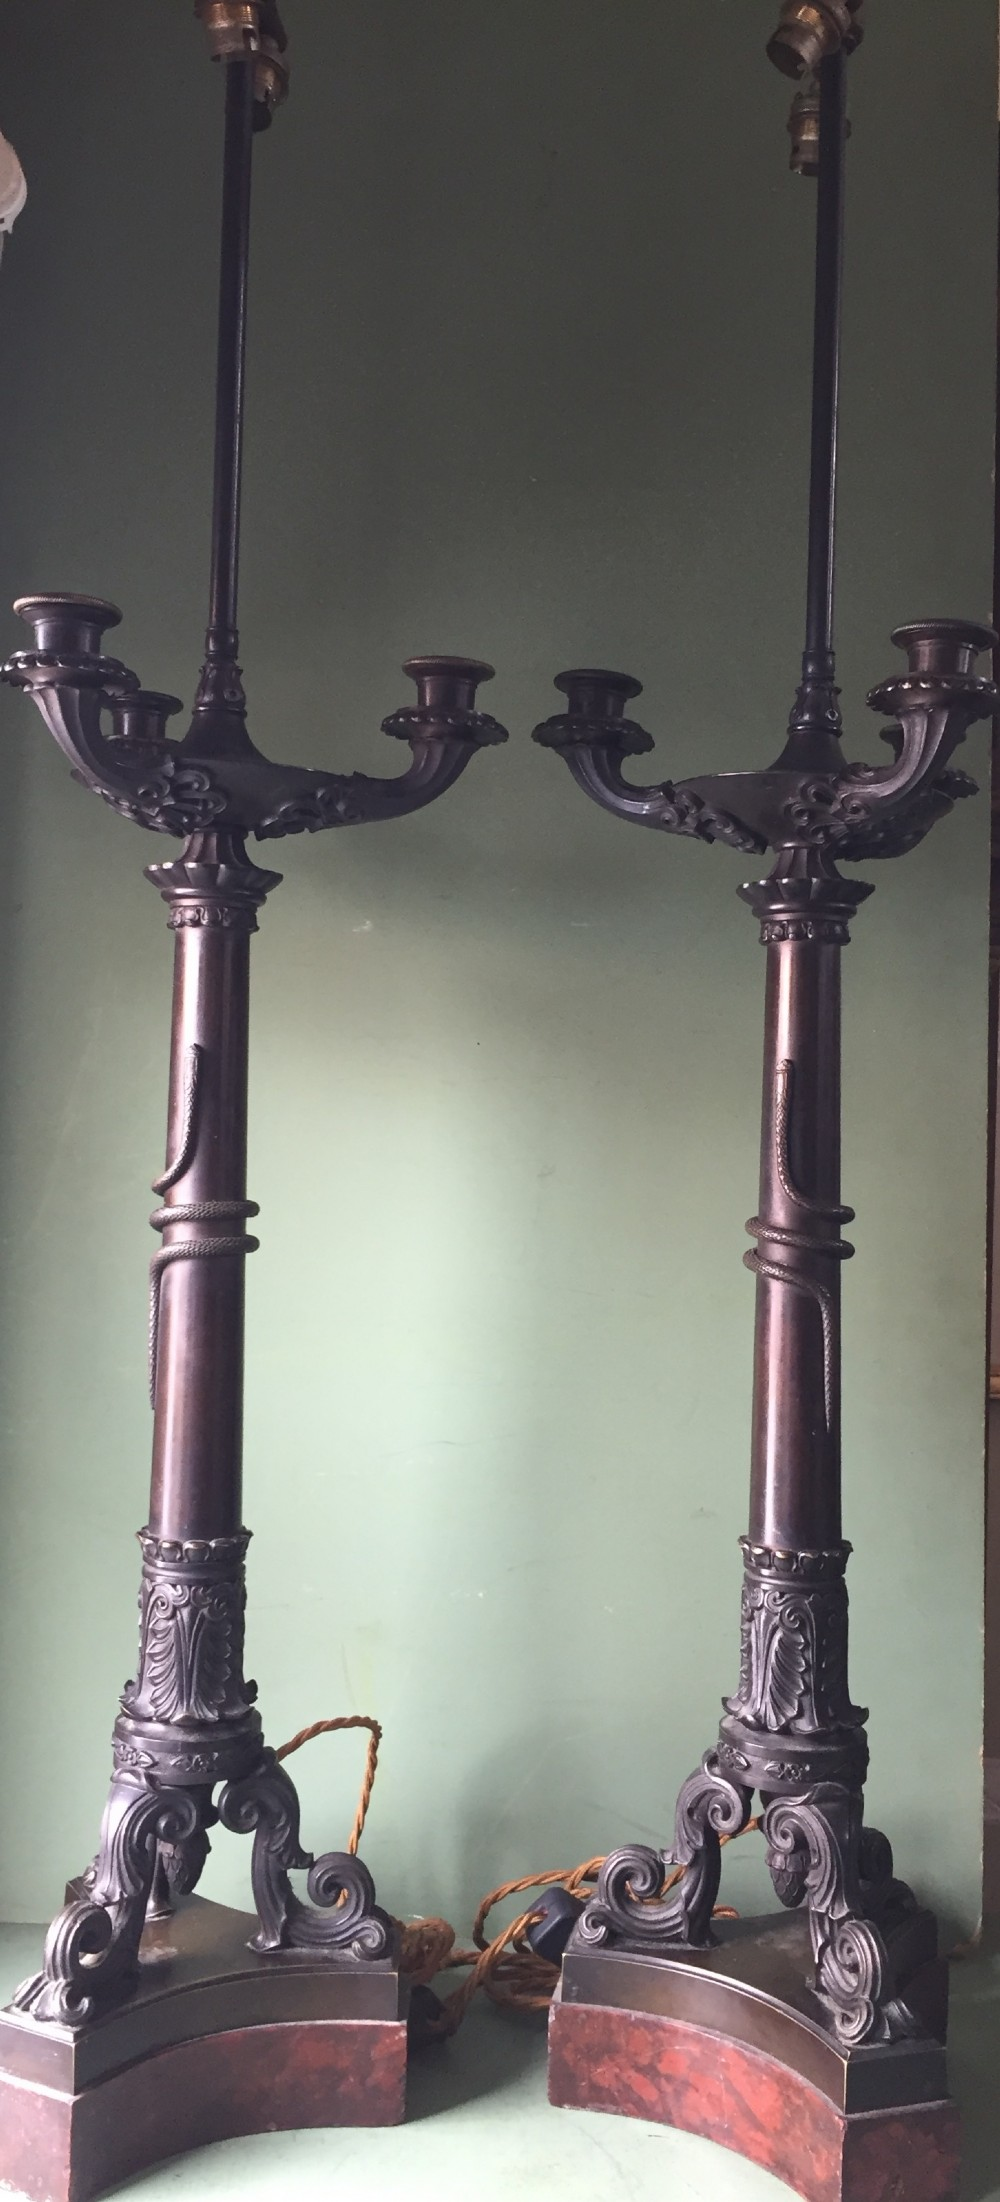 imposing pair of early c19th french charles x period bronze lamps on 'rouge griotte' marble bases